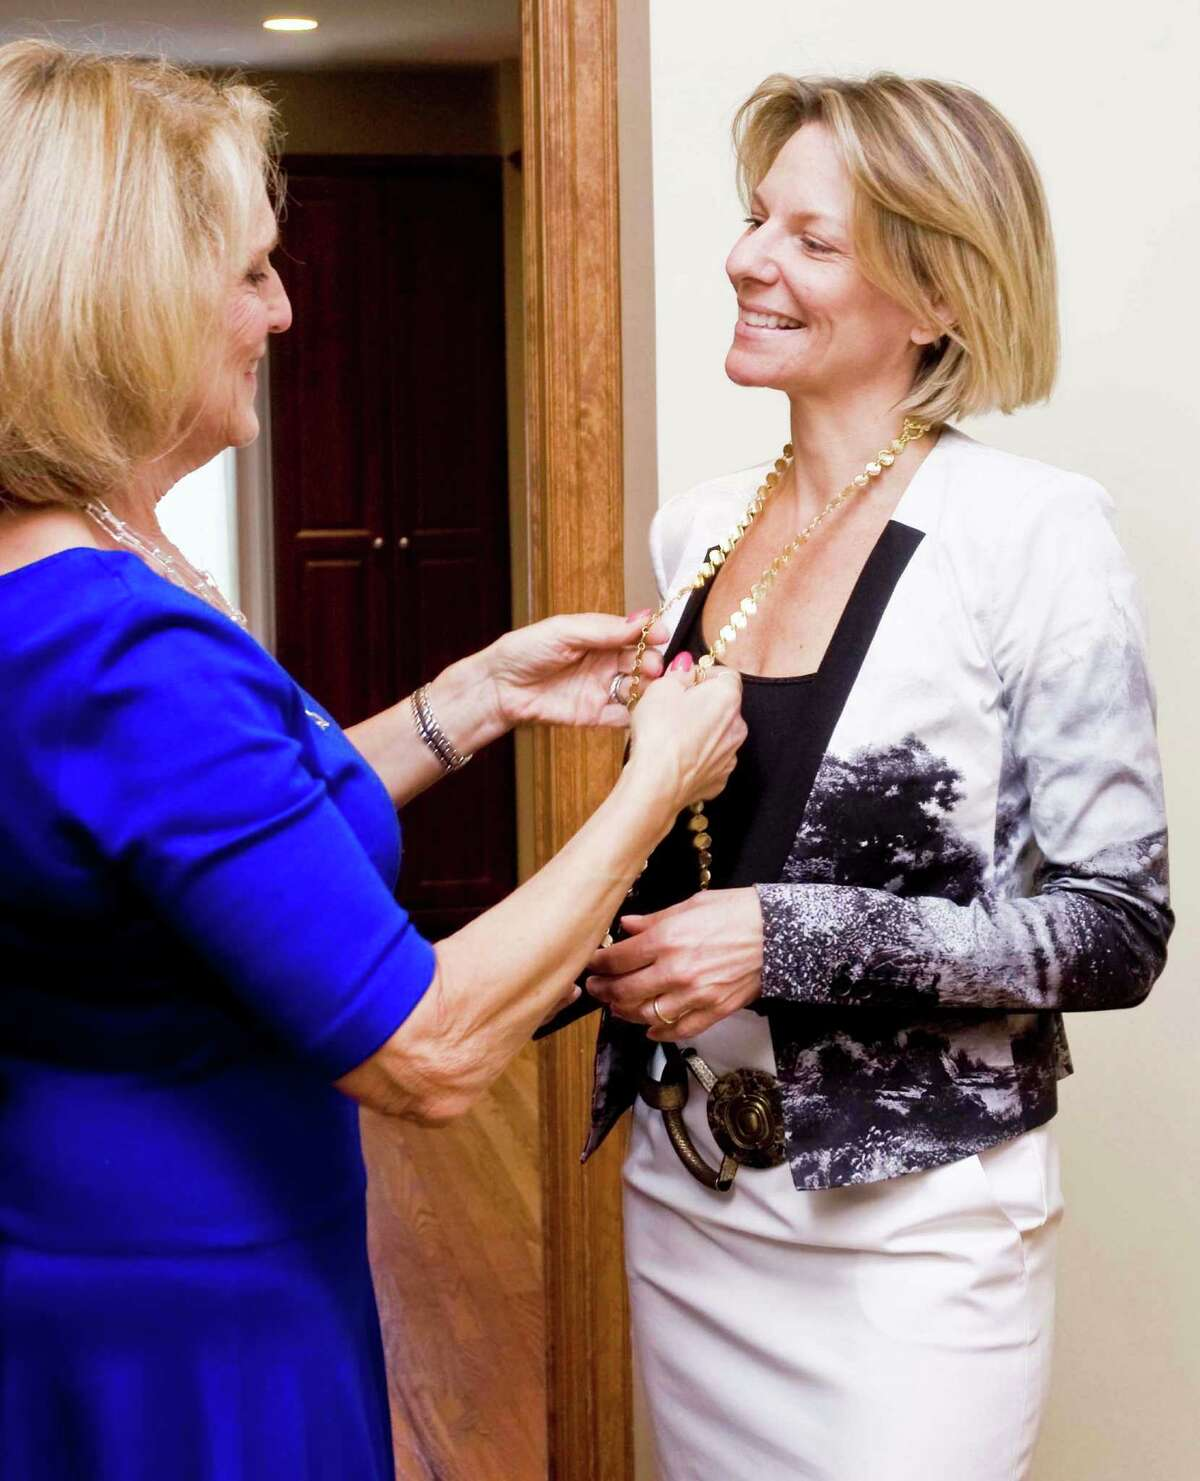 Image consultant and Danbury resident Pam Friedlander, owner of Positive Reflections, helps Ridgefield resident Lisa Jones choose the right clothes and accessories to look and feel her best, at Lisa's home in Ridgefield. Wednesday, June 25, 2014